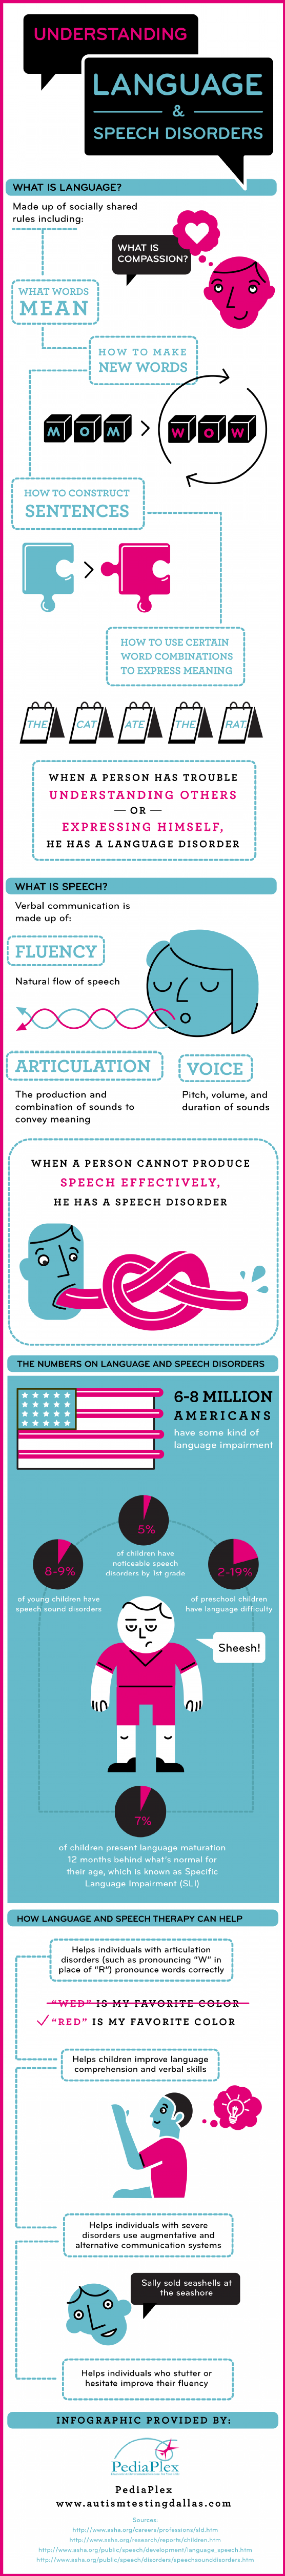 Understanding Language and Speech Disorders Infographic